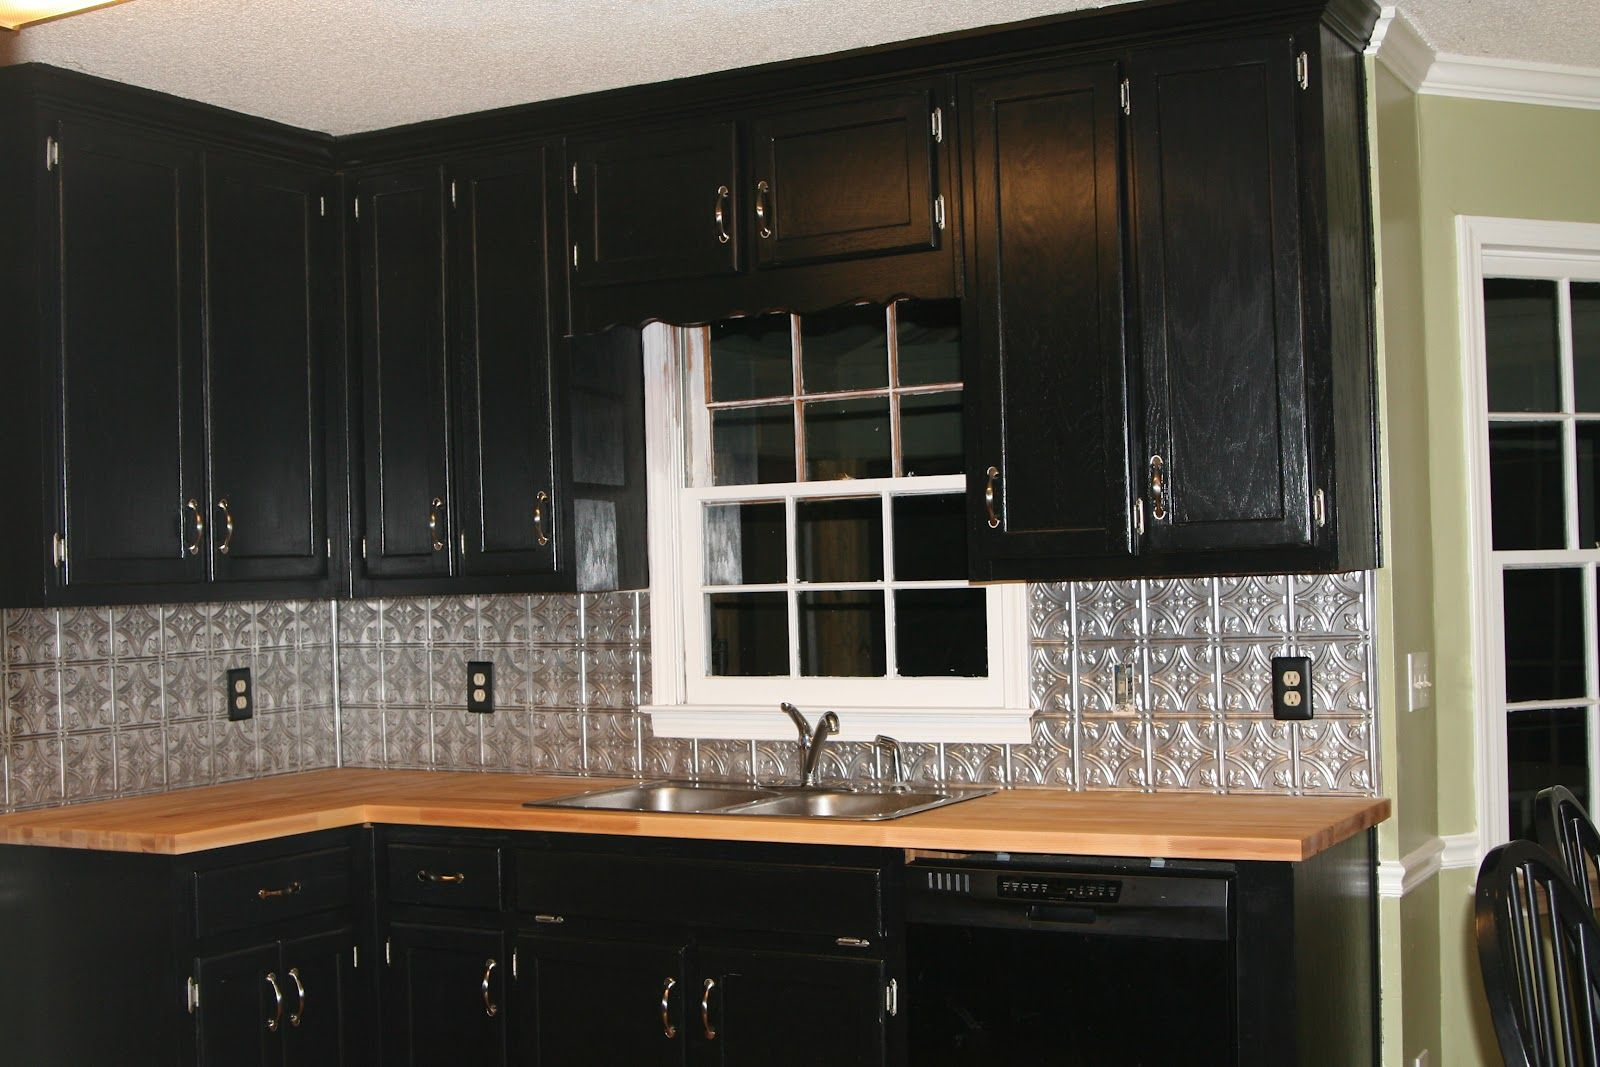 Easy Redo S For Our Kitchen Until We Can Do The Big Remodel Black Kitchen Cabinets Tin Backsplash Kitchen Contemporary Kitchen Backsplash